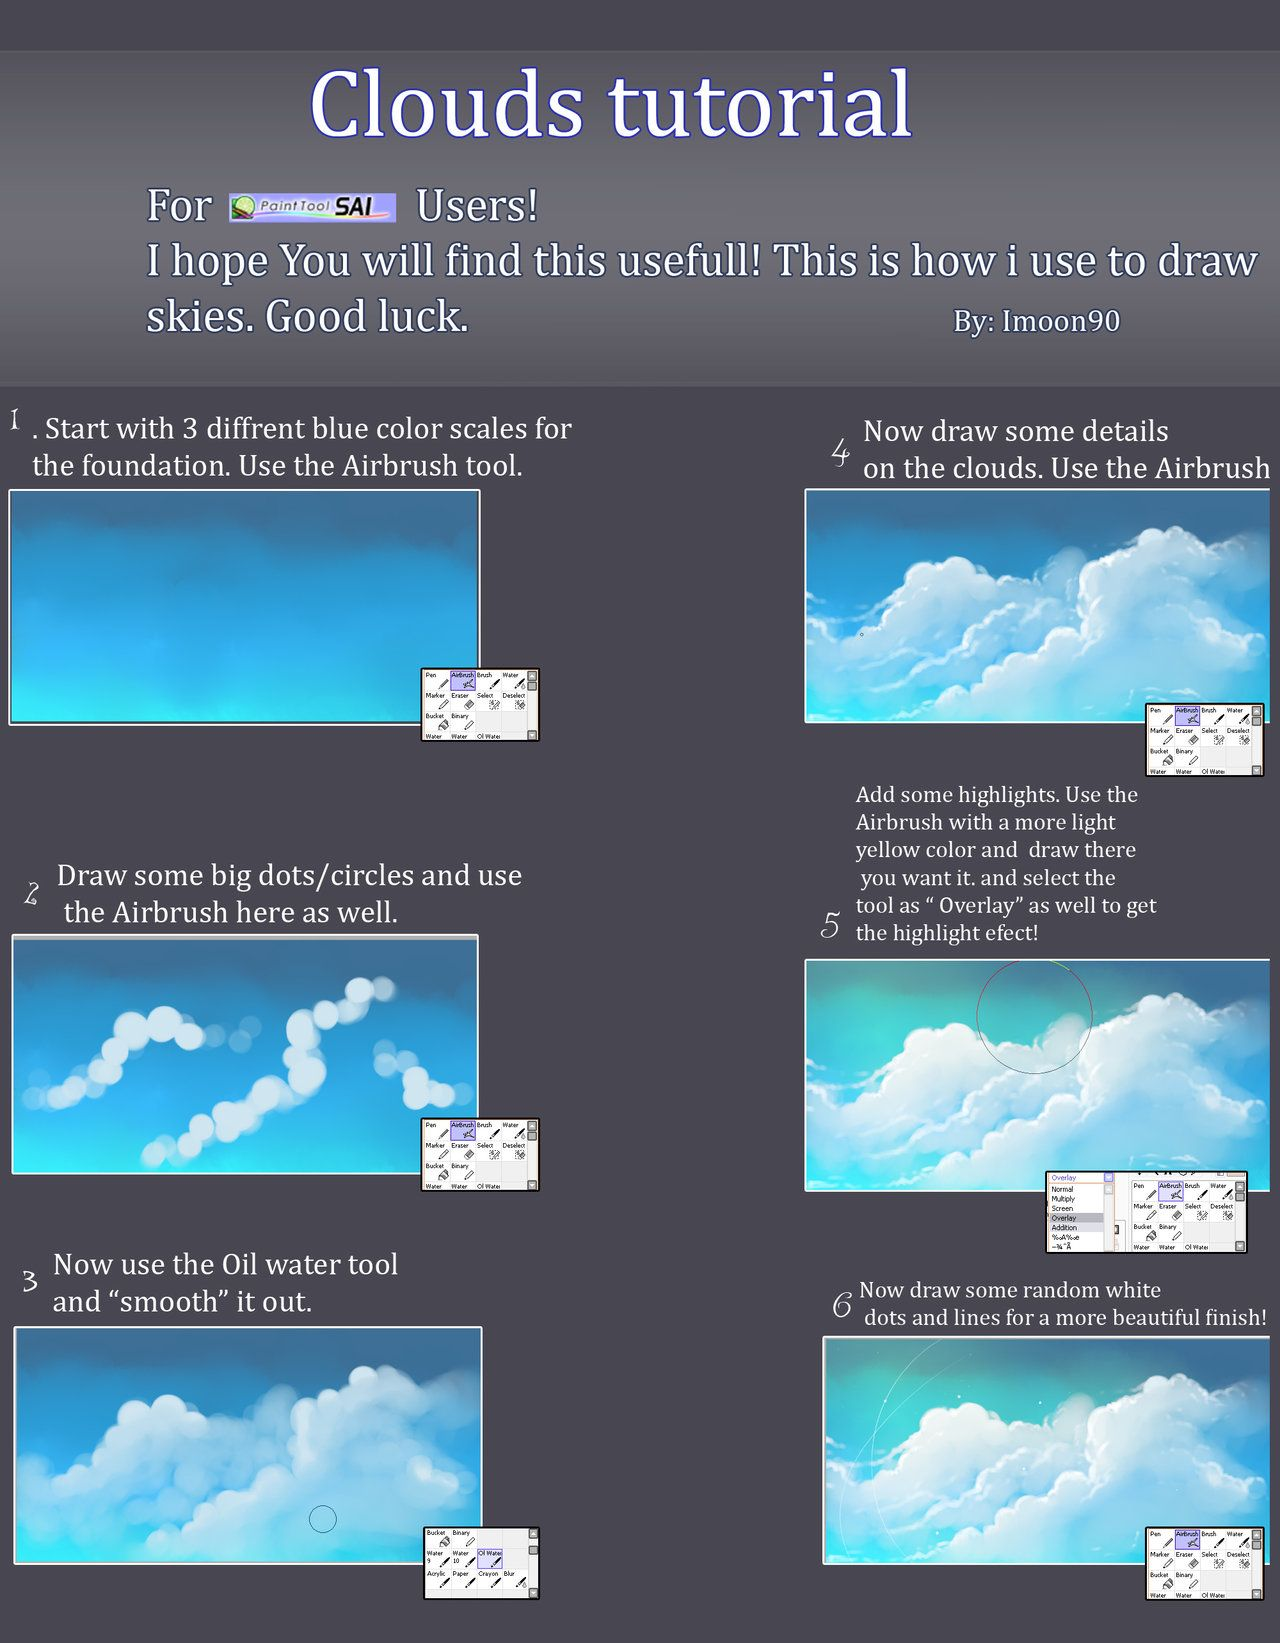 Clouds Tutorial By Imoon90 On Deviantart Cloud Tutorial Digital Painting Tutorials Painting Tutorial